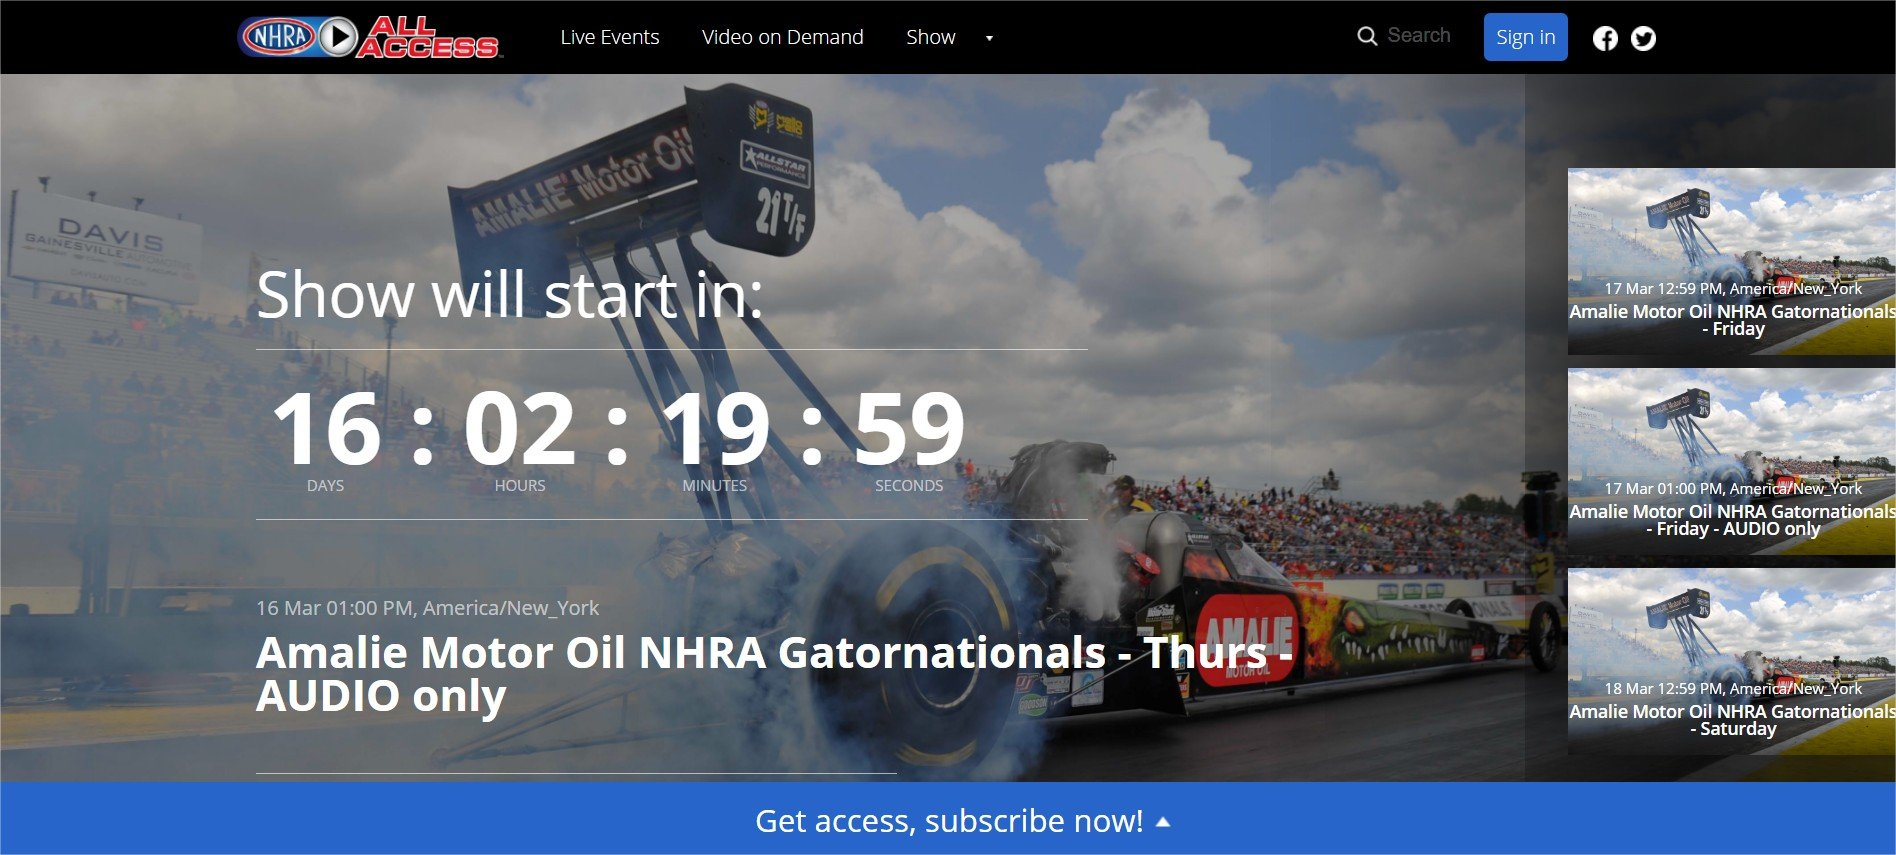 NHRA All Access - powered by Cleeng